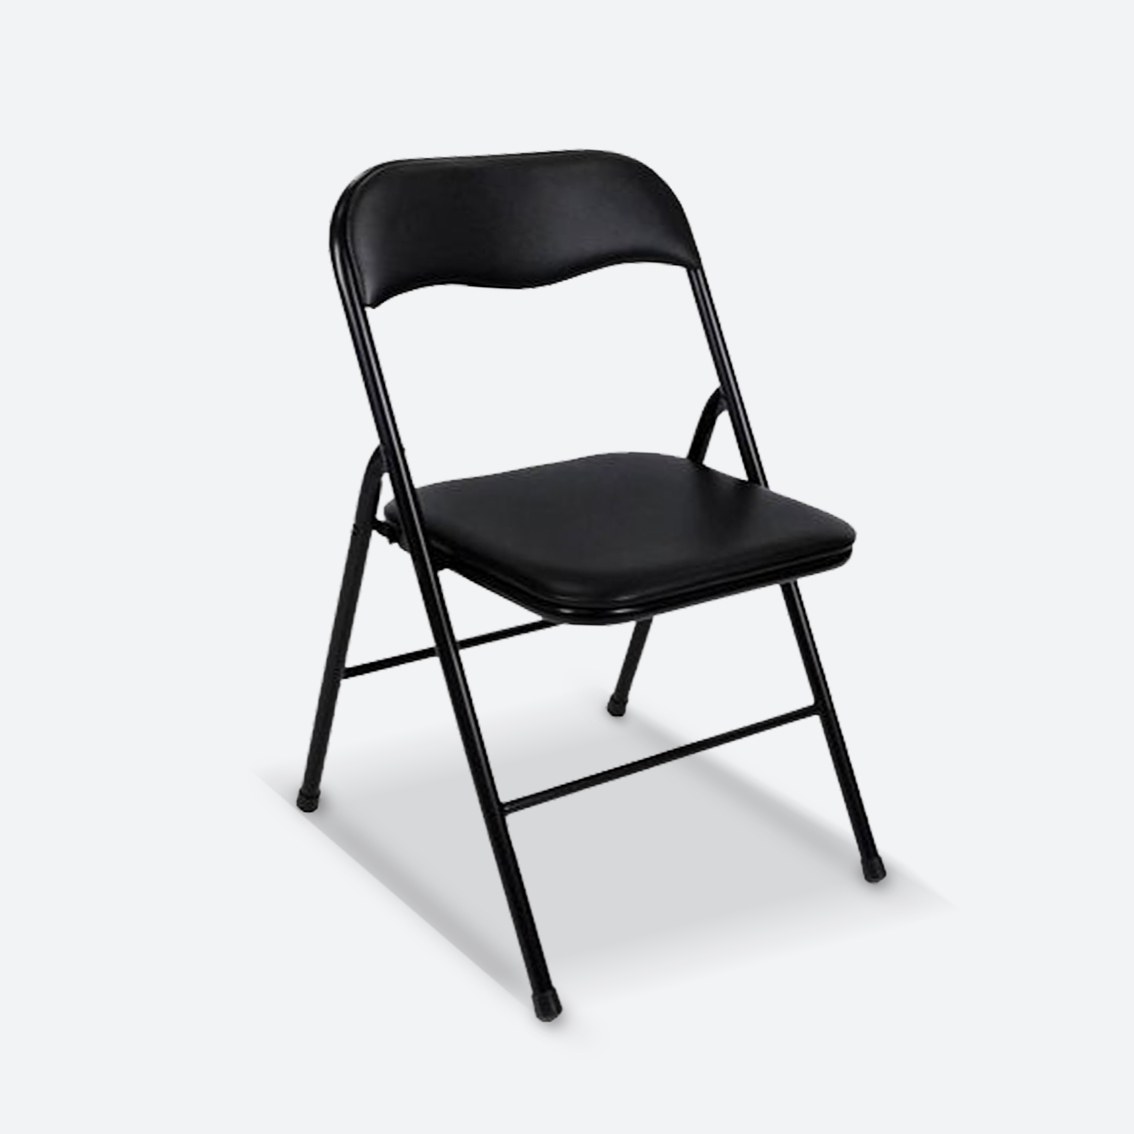 FOLDING CHAIR   BLACK  $3.95